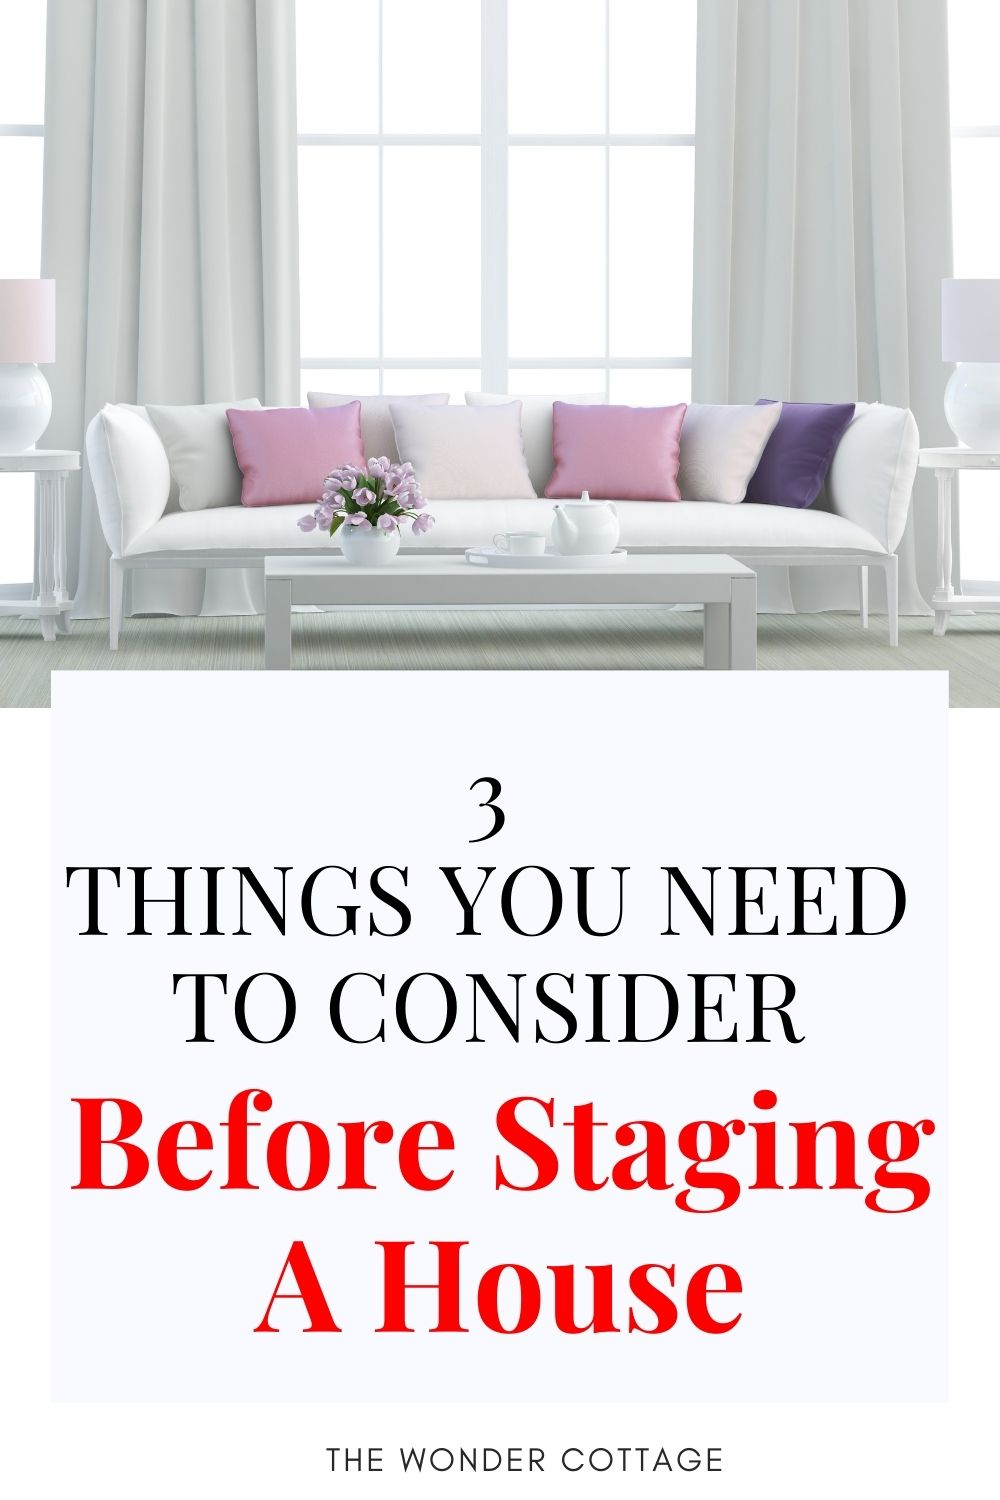 3 things you need to consider when staging a house